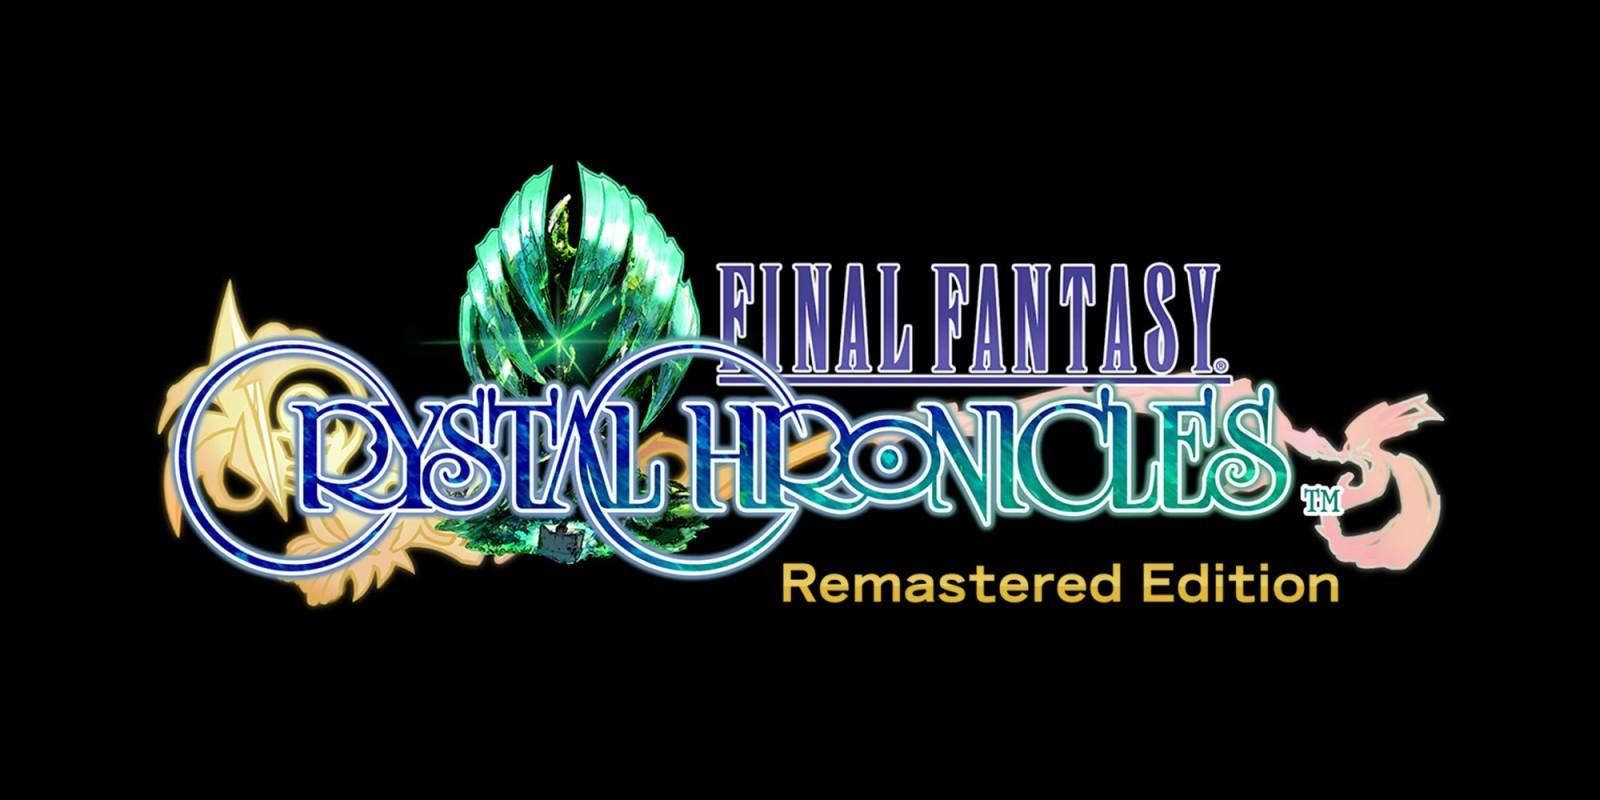 FINAL FANTASY CRYSTAL CHRONICLES Remastered Edition 10